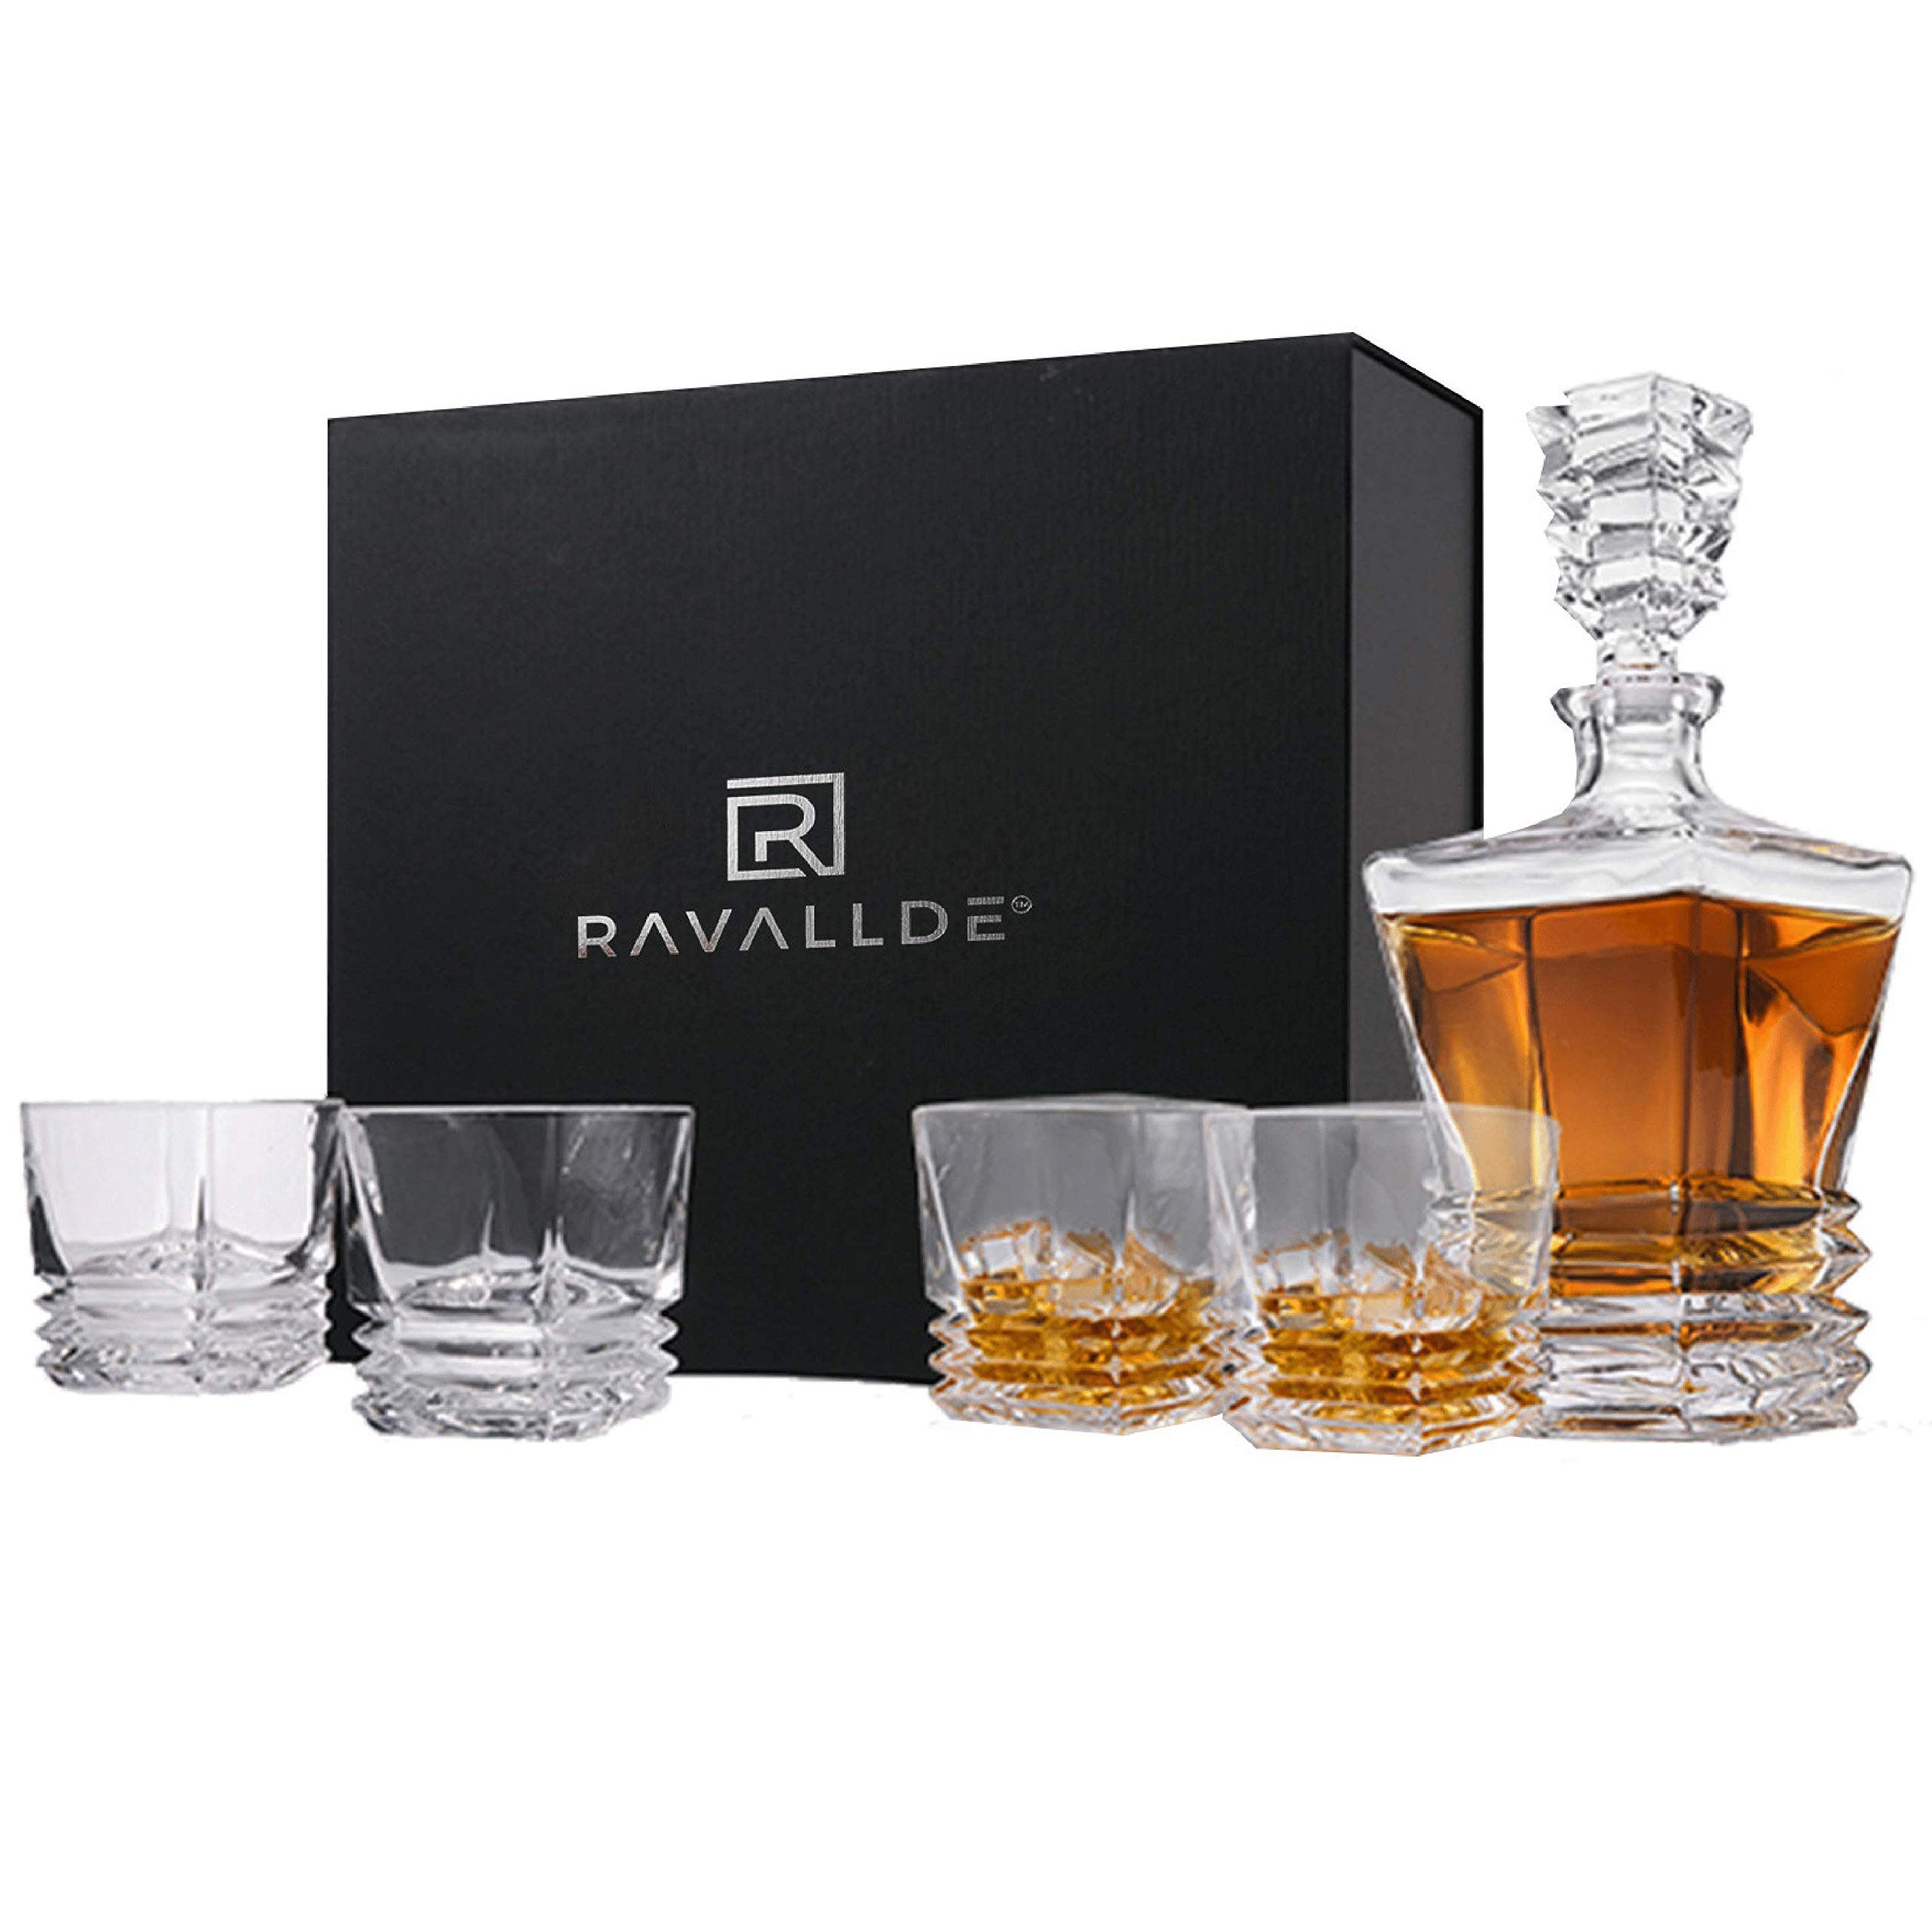 Pacific Whiskey Decanter Gift Set - Unique 5-Piece European Lead-Free Crystal Barware, Classic 27Fl oz Liquor Decanter With 4 Elegant Old Fashioned Glasses For Scotch, Whisky, Rum, Bourbon in Gift Box by RAVALLDE